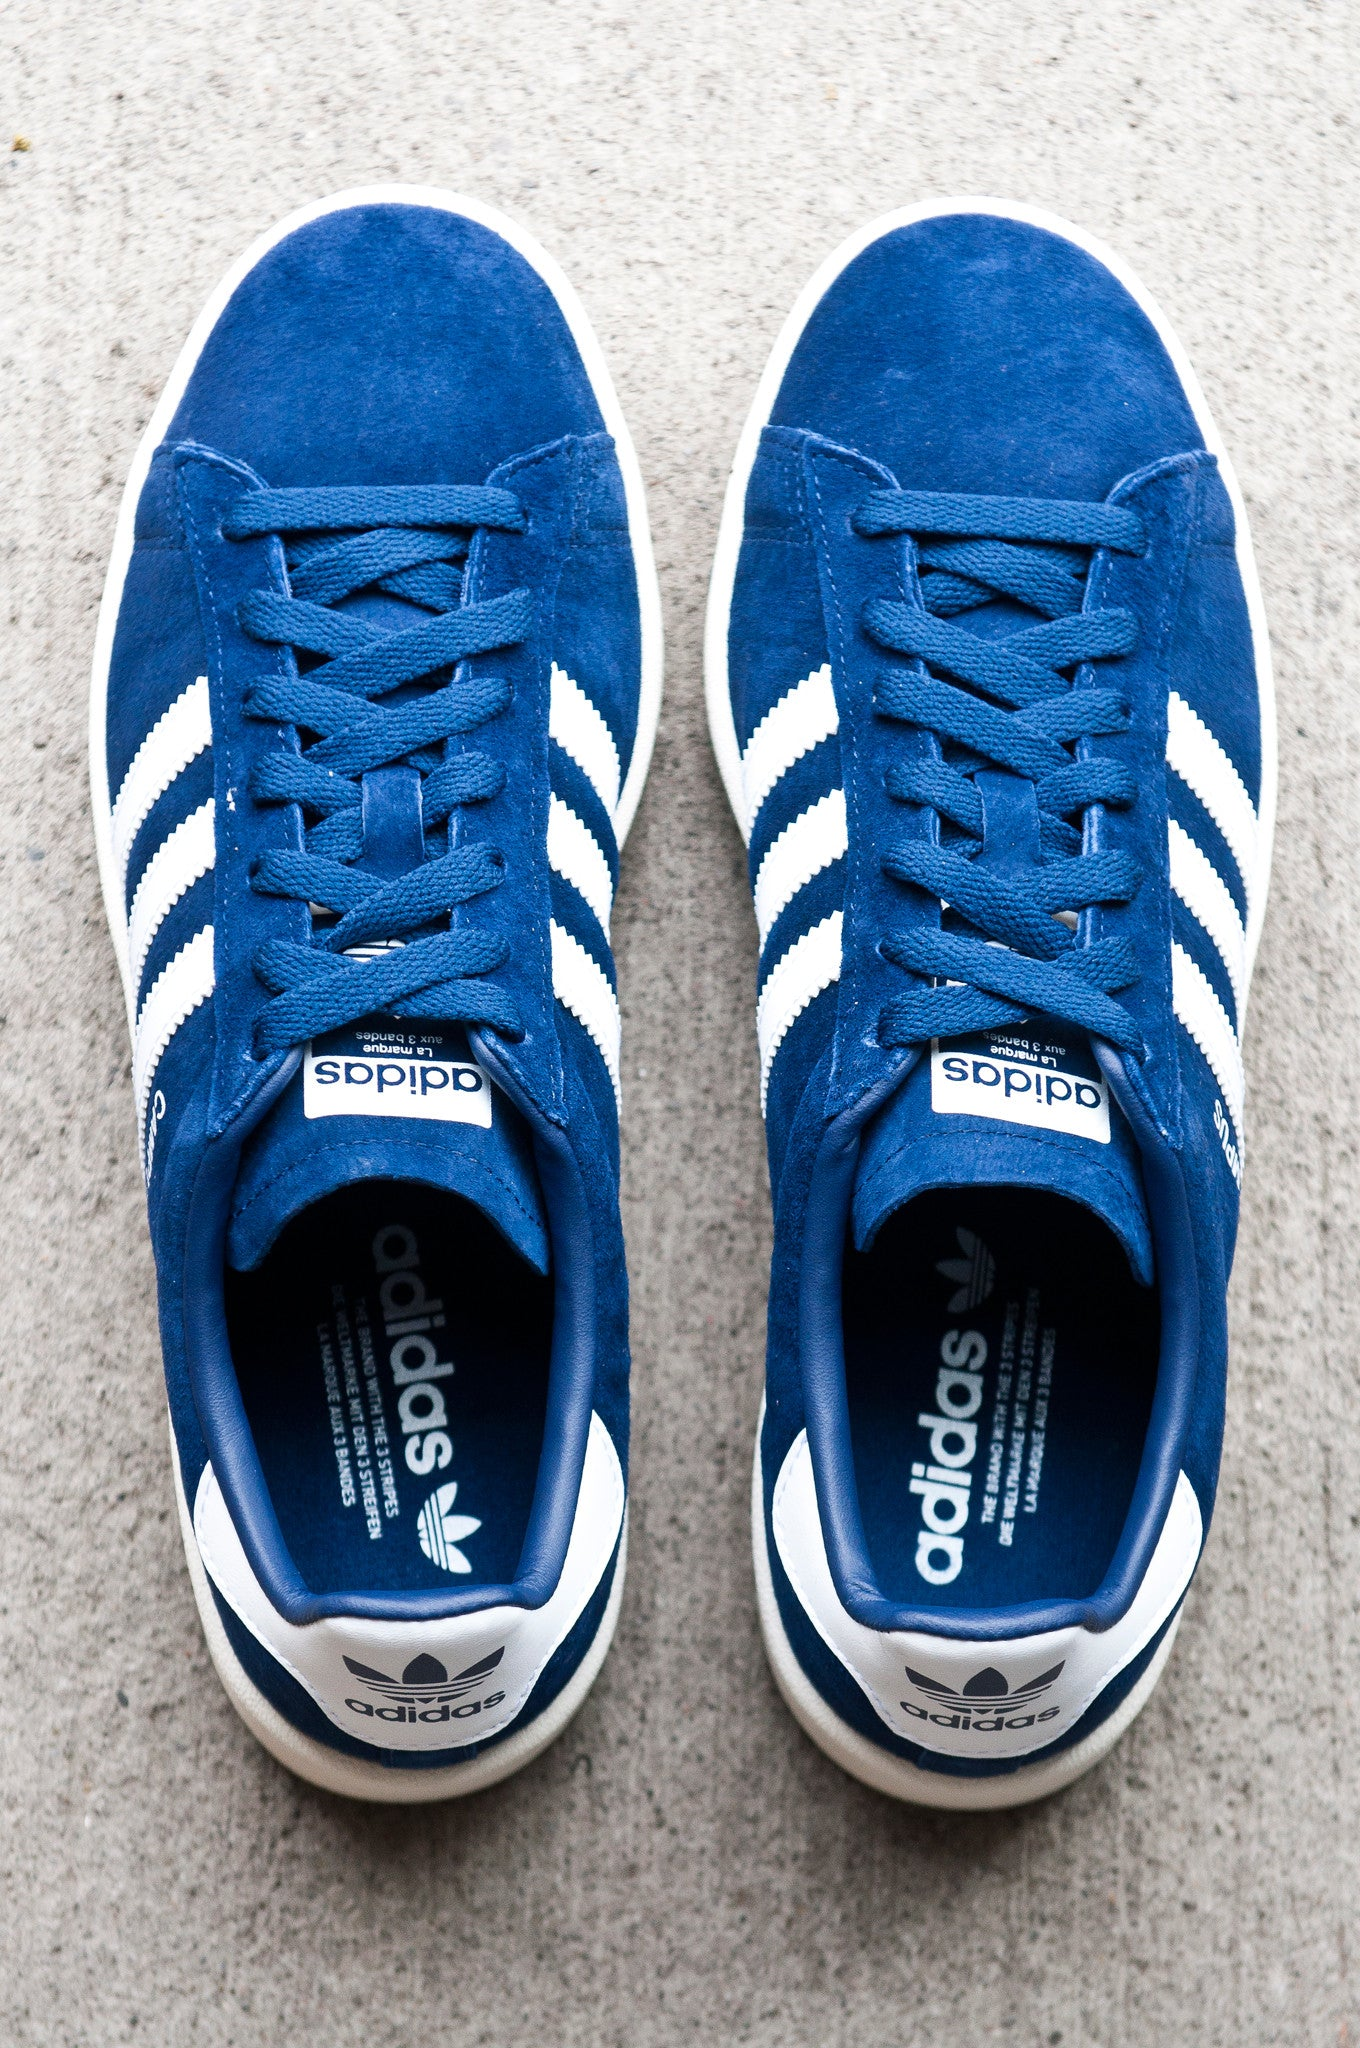 Adidas Campus Classic DK Blue White Navy BZ0086 at shoplostfound 3